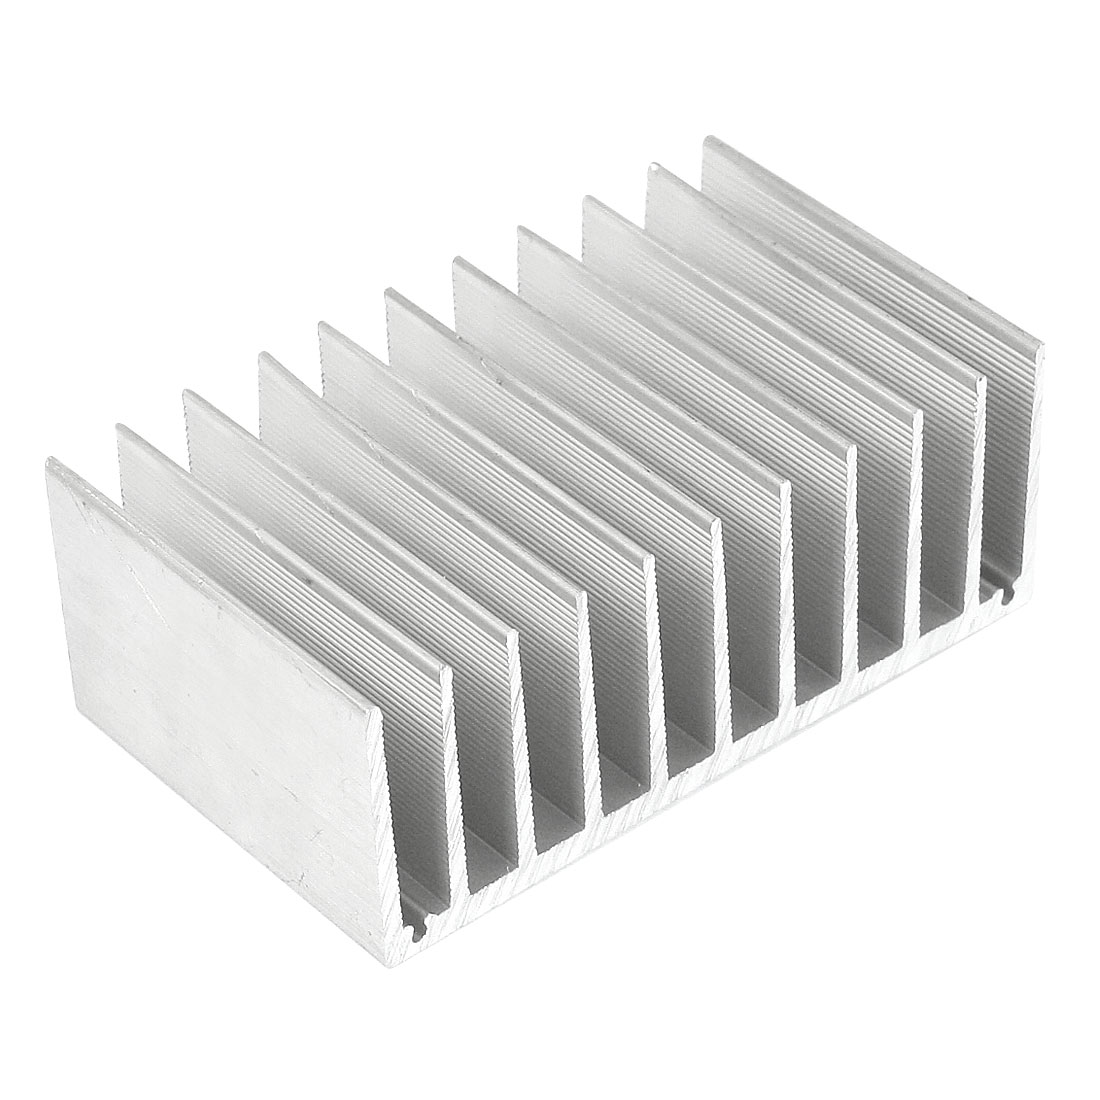 Silver White 100mmx60mmx38mm LED Heat Sink Aluminum Cooling Fin